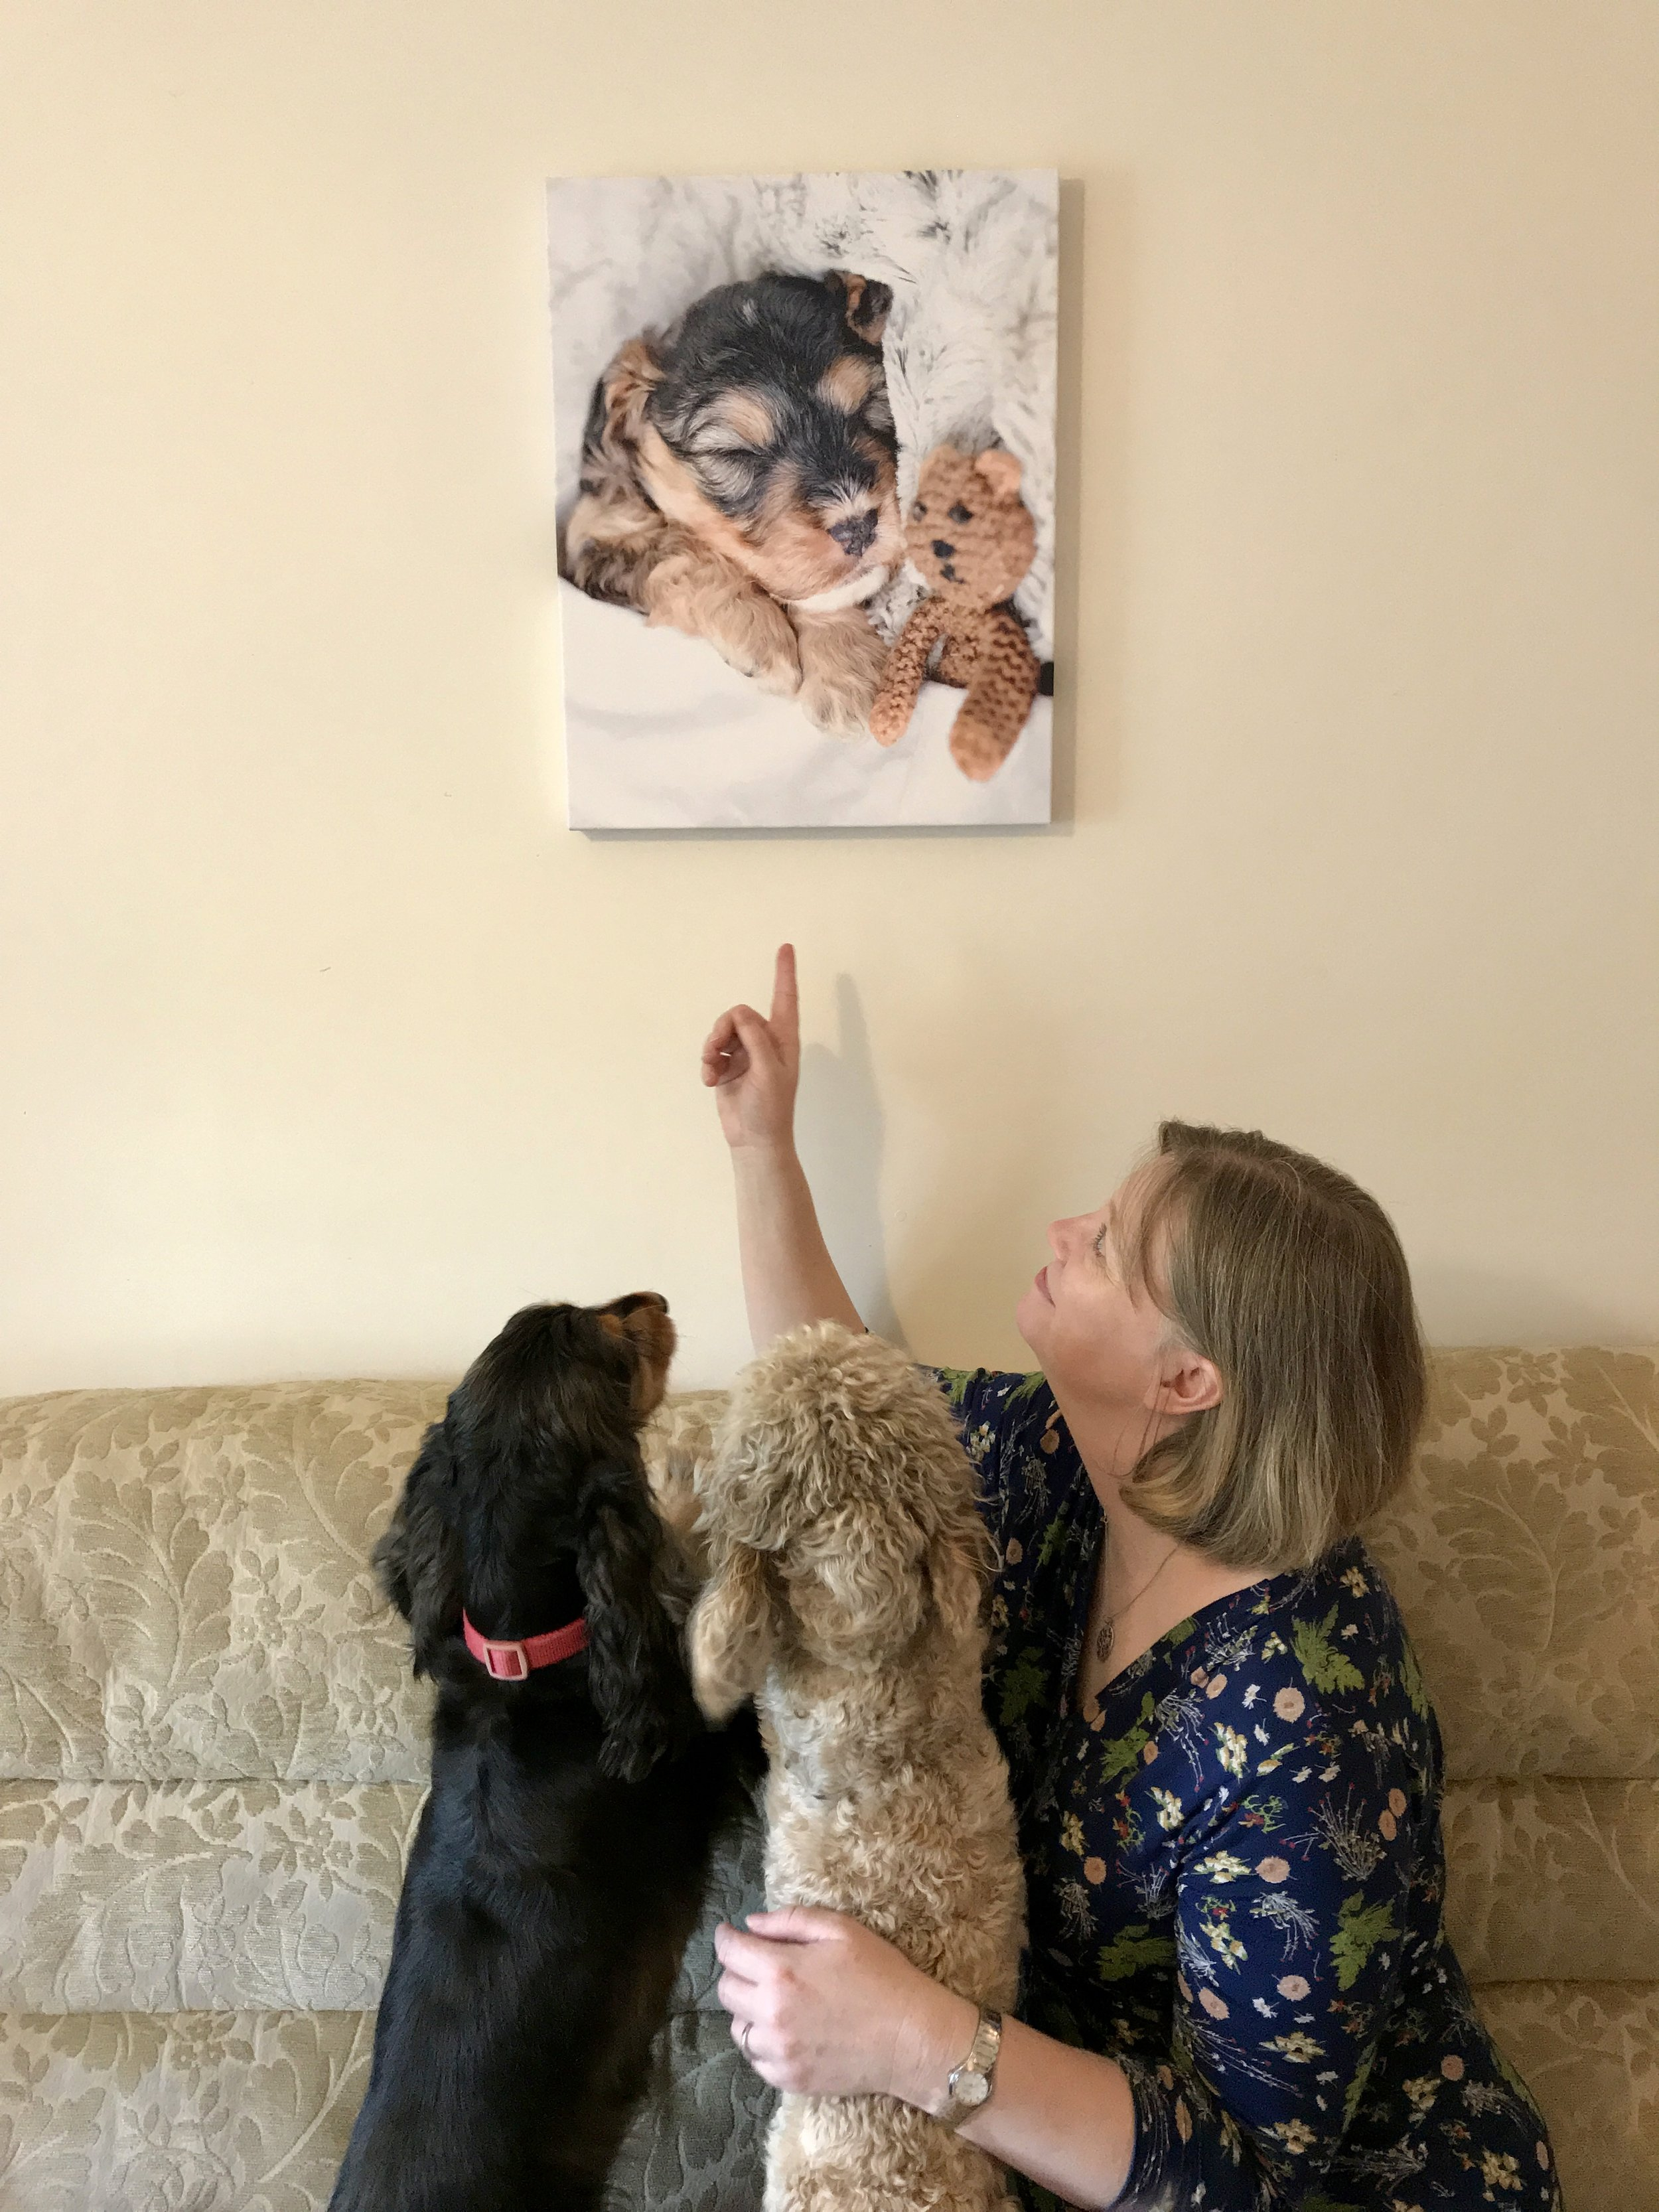 Grace, Jolene and Lydia admire Mark's handiwork - mounting the print on the wall using the mounting kit provided. Who's a good boy!